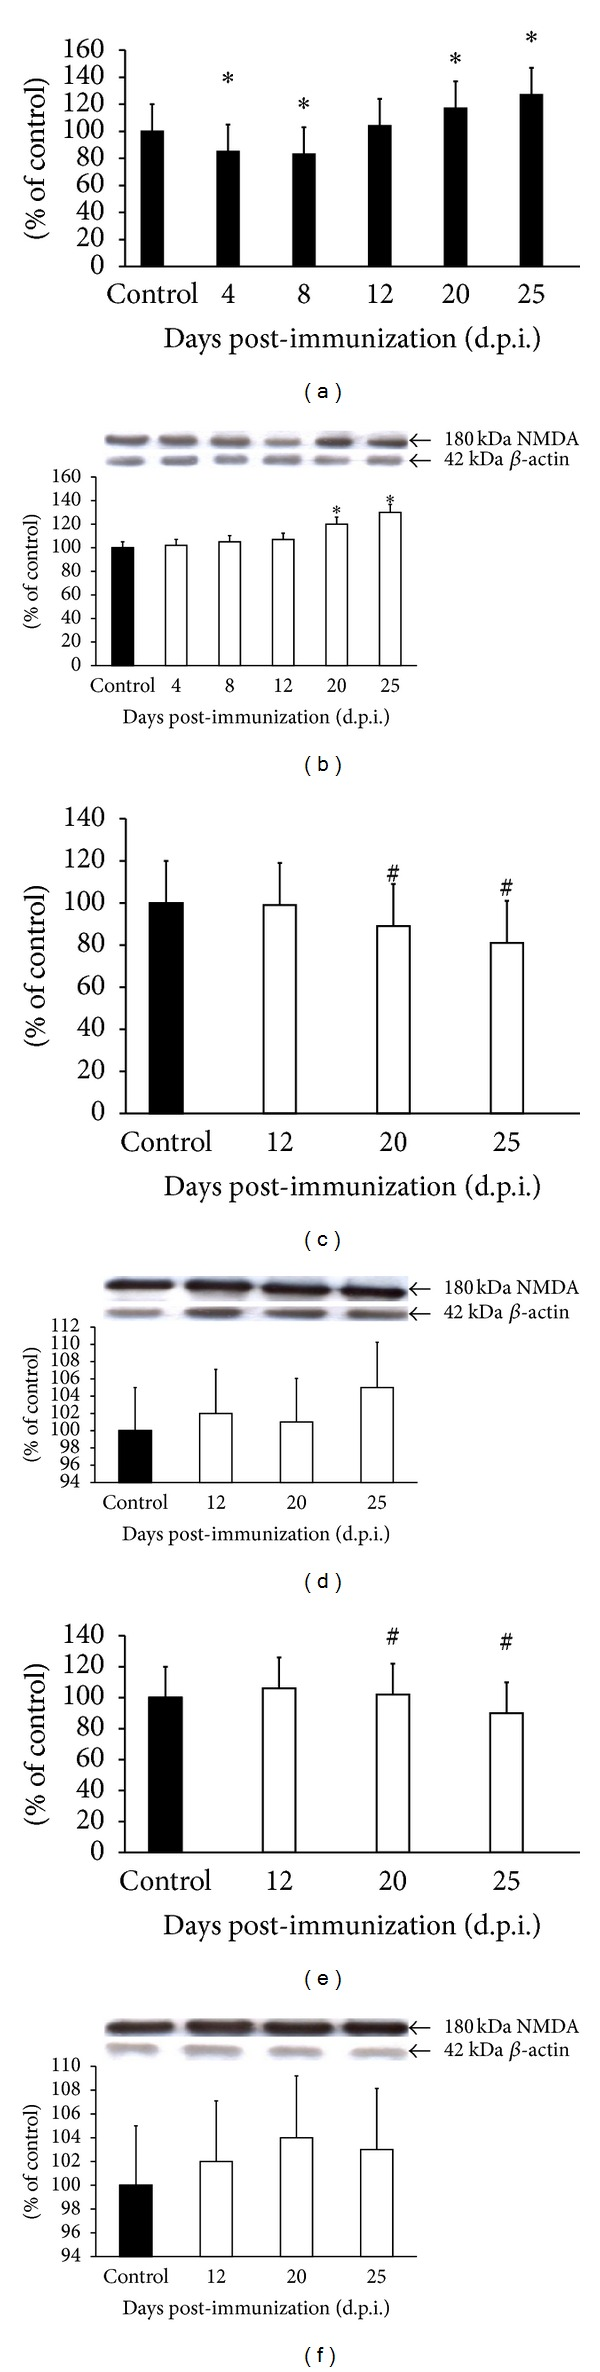 Expression of mRNA of NMDARs (a, c, and e) and protein (b, d, and f) in forebrain of control and EAE rats at different times post-immunization (a and b) and after therapeutic treatment with antagonists of NMDA receptors: amantadine (c and d) and memantine (e and f). Total RNA was prepared from healthy control rats, rats with EAE, and rats with EAE after therapy at the indicated d.p.i. Levels of NMDA mRNAs were determined by quantitative real-time PCR (see Section 2 ) and normalized to actin. Graphs (a), (c), and (e) present the results expressed as percentage of control from four independent experiments. * P